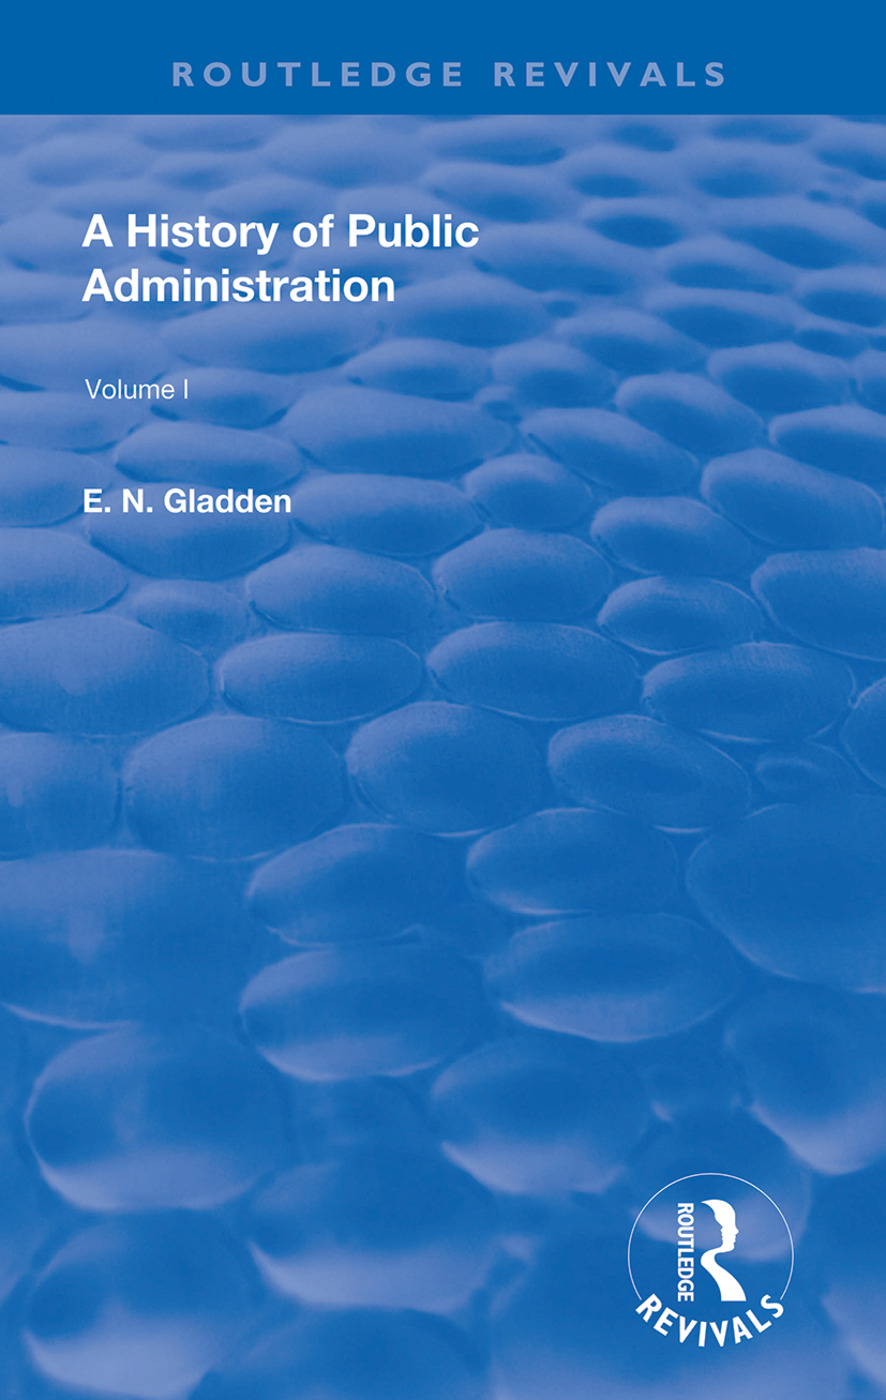 A History of Public Administration: Volume I: From the Earliest Times to the Eleventh Century book cover